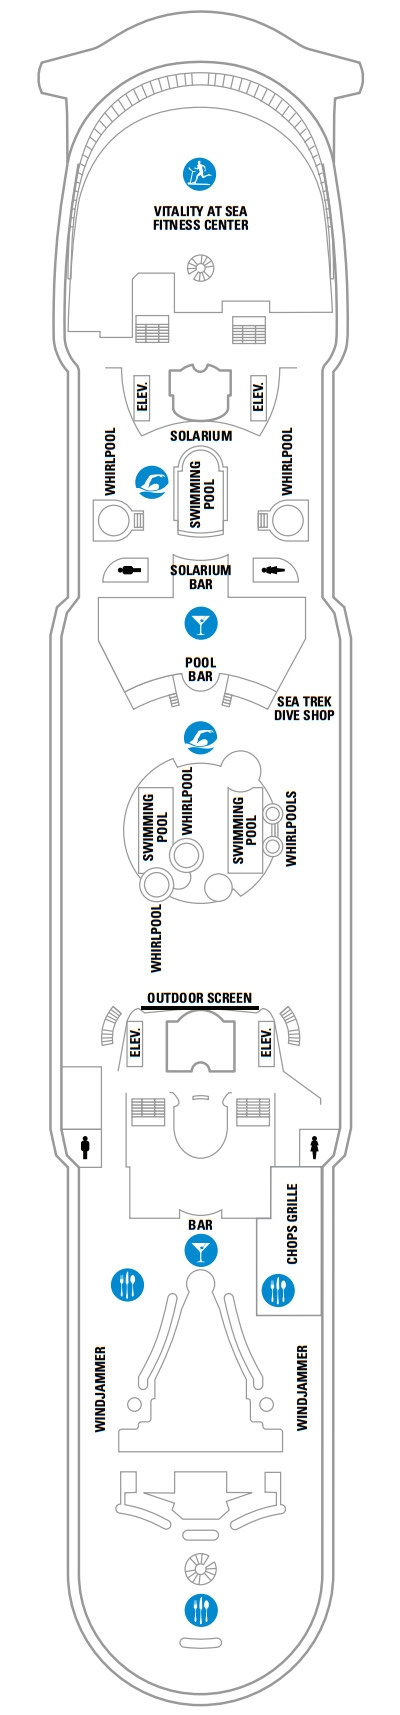 Voyager Of The Seas Deck 11 layout